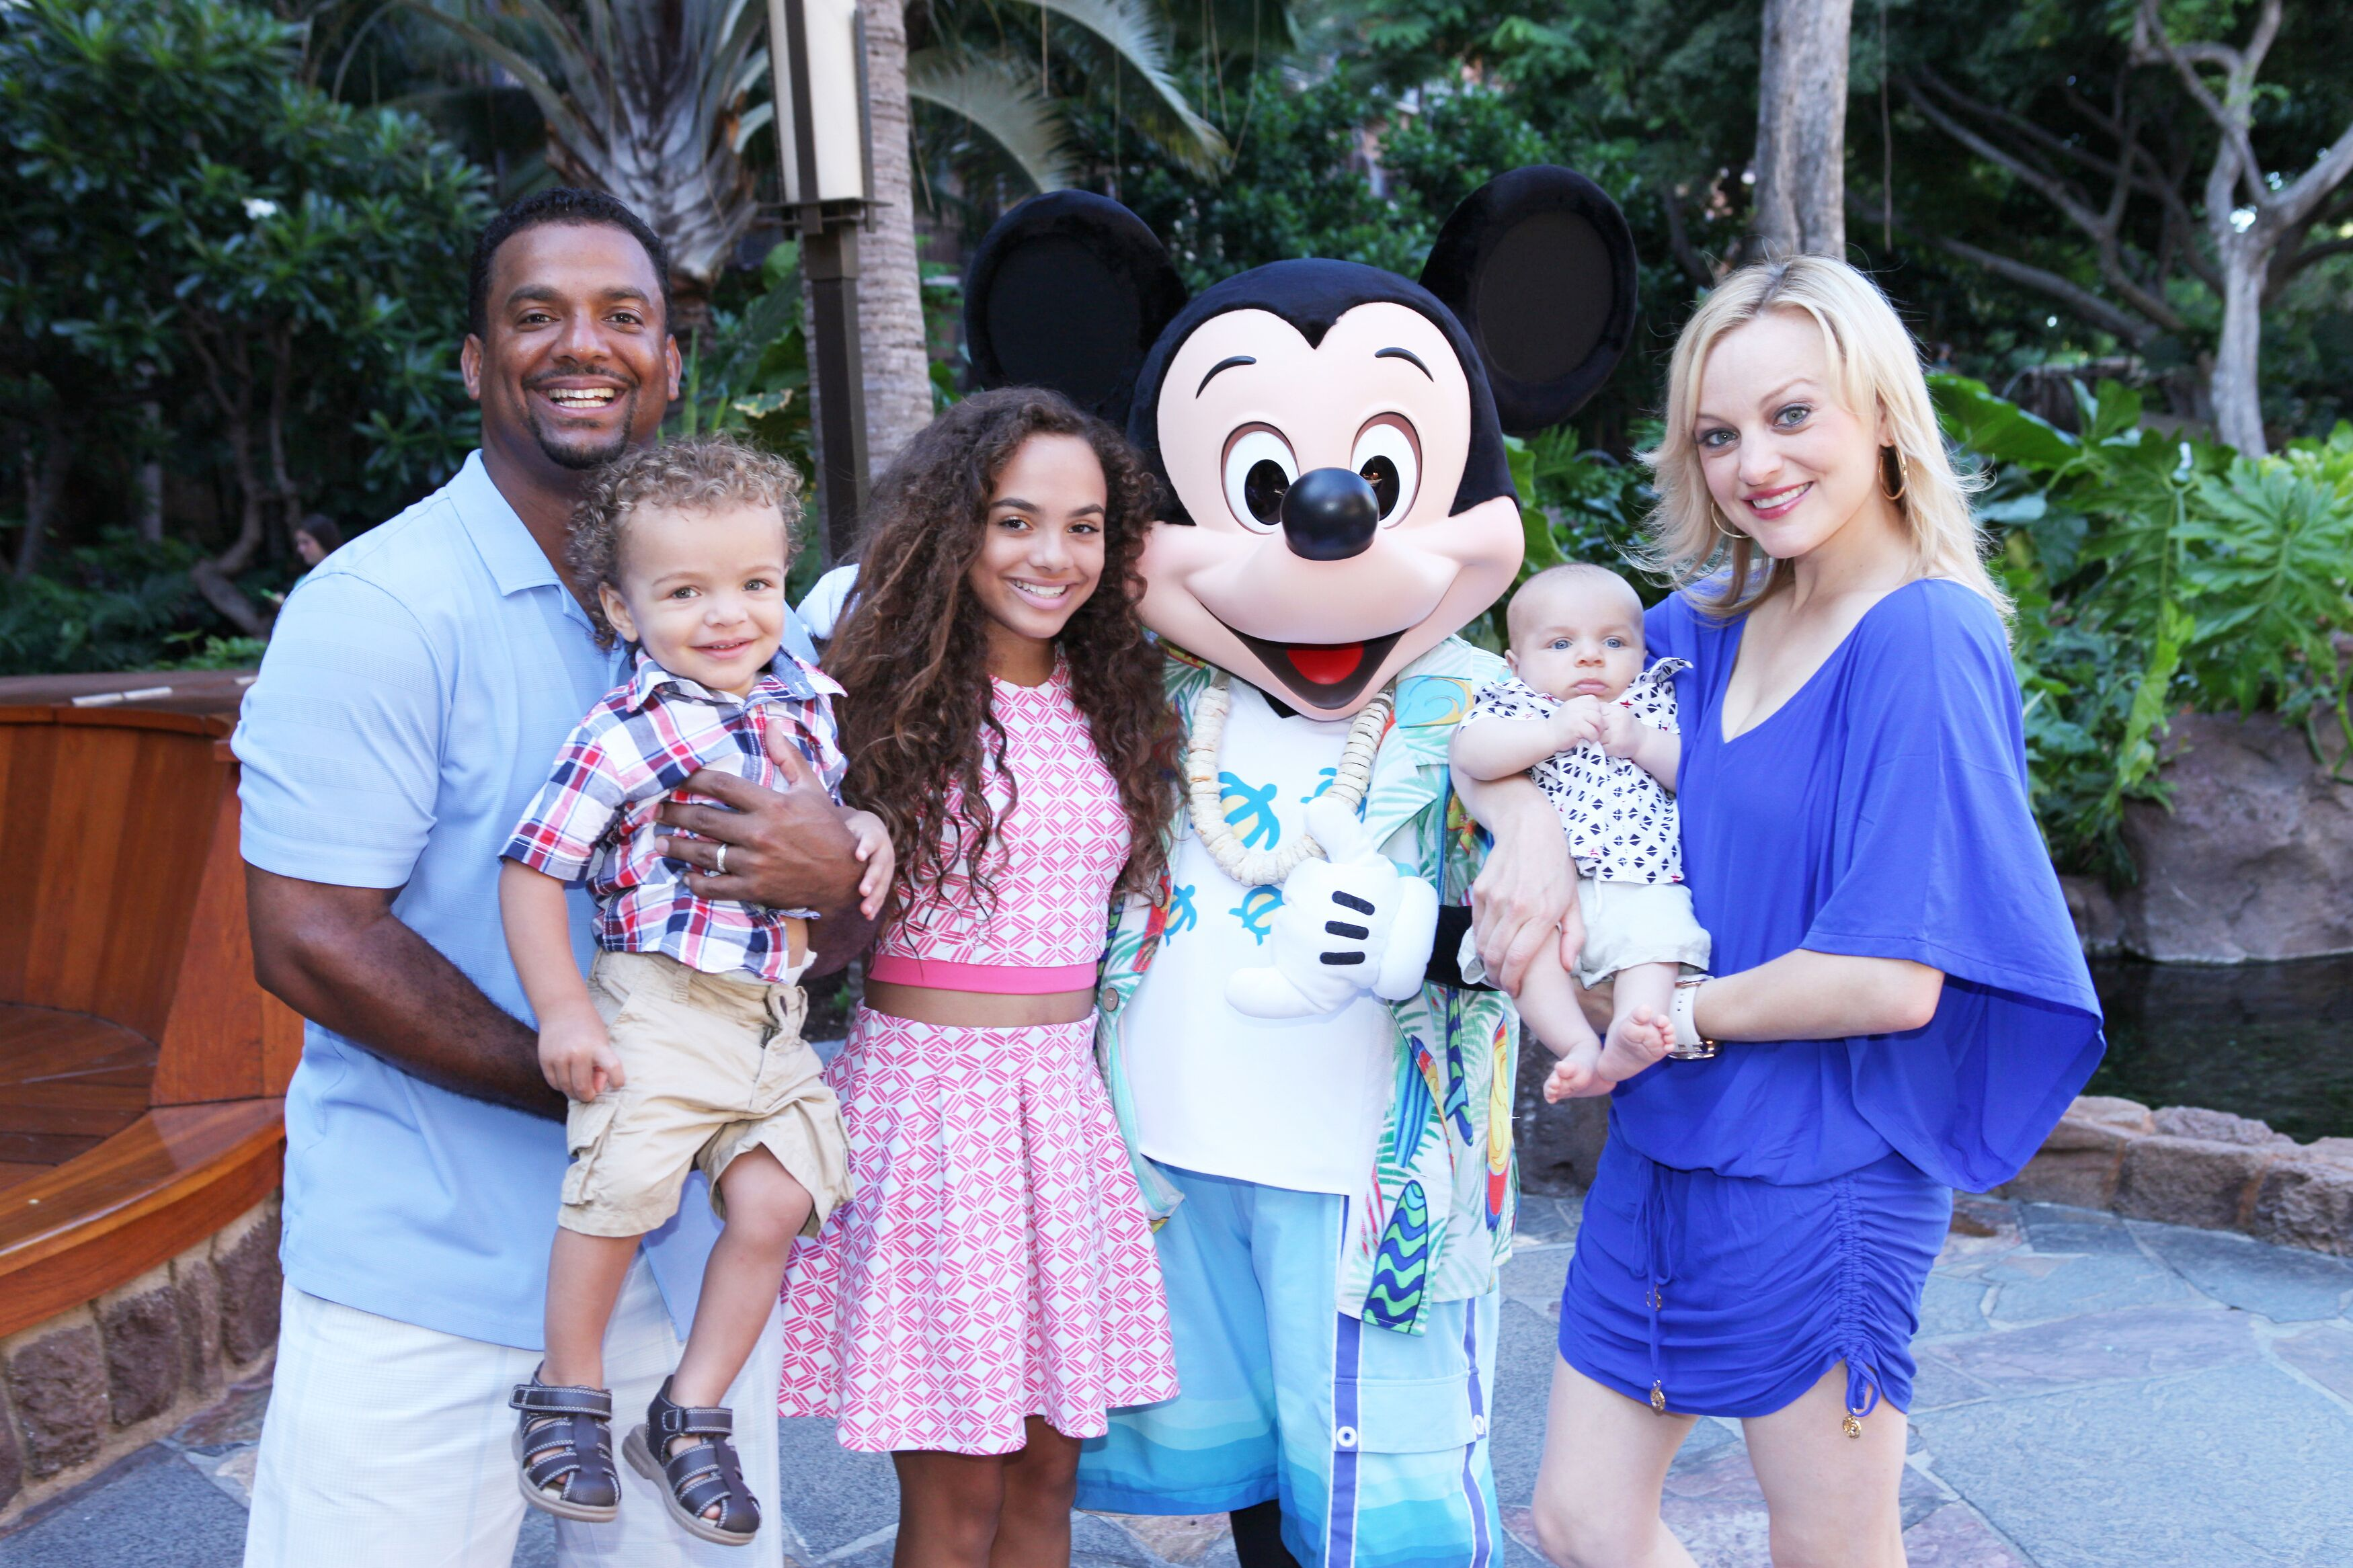 Alfonso and Angela Ribeiro with their children at Disneyland | Source: Getty Images/GlobalImagesUkraine